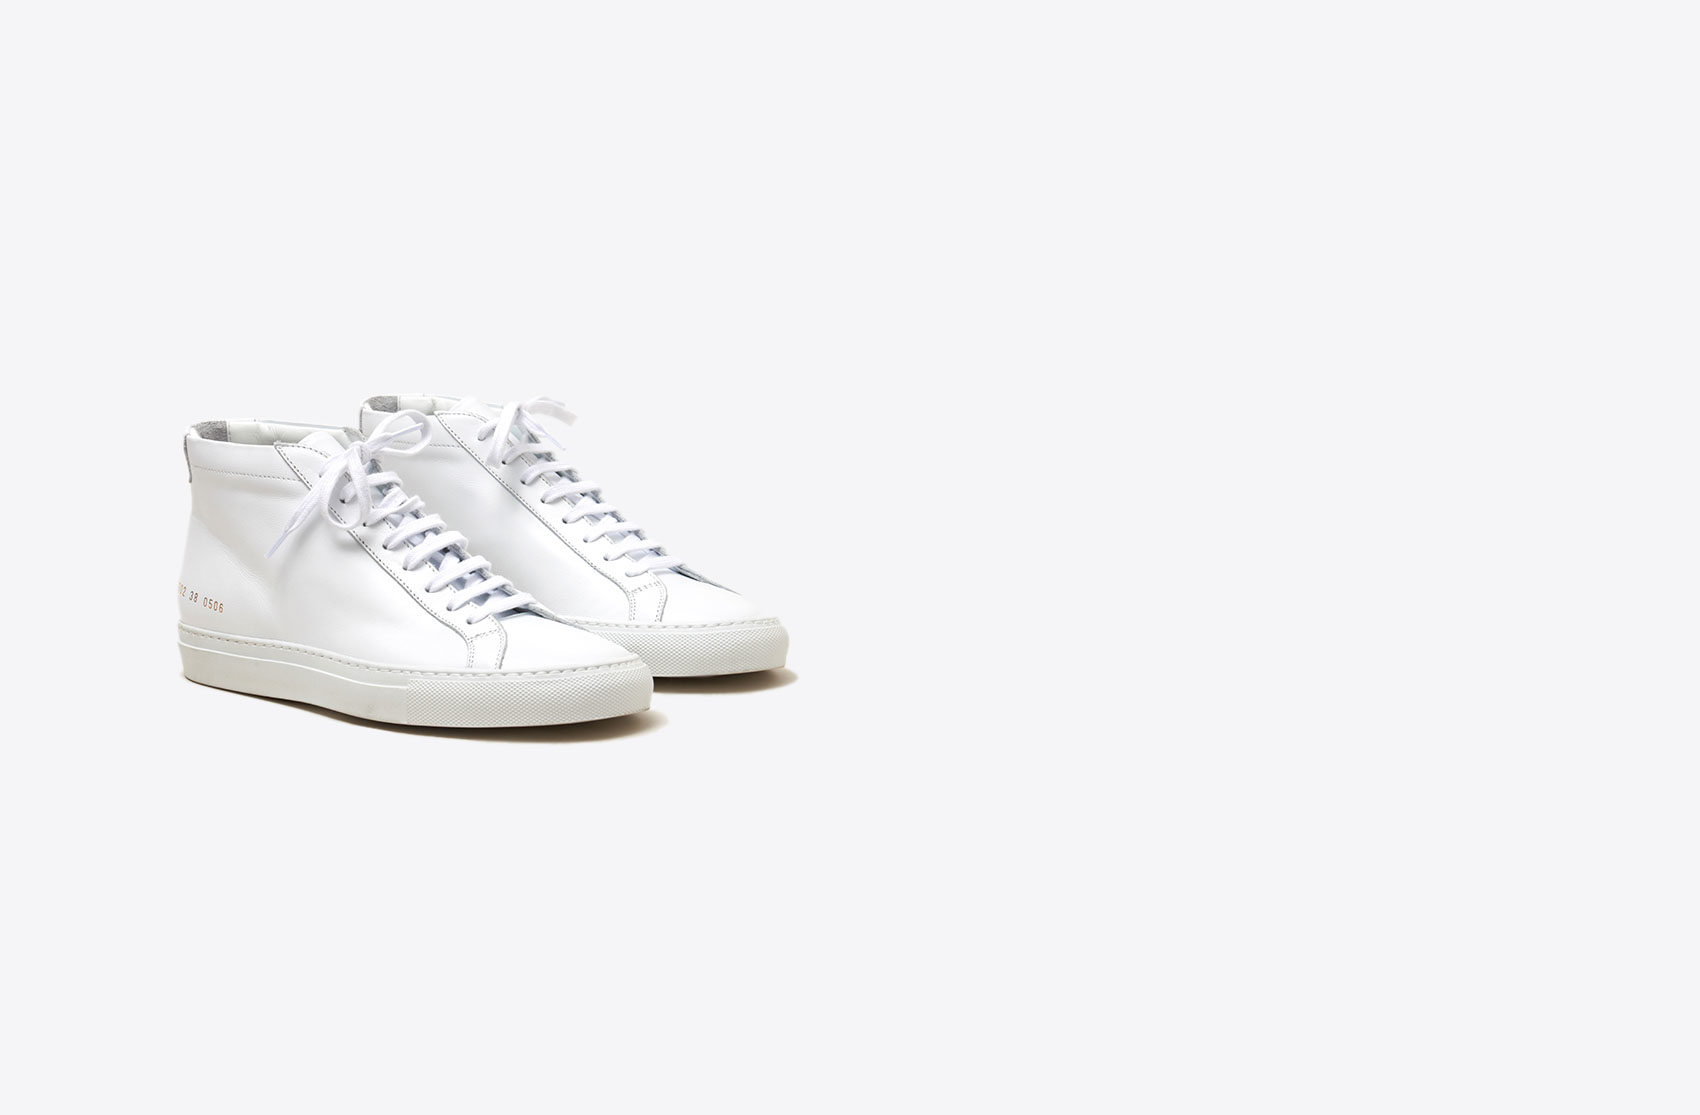 common projects original achilles mid sneakers in white lyst. Black Bedroom Furniture Sets. Home Design Ideas